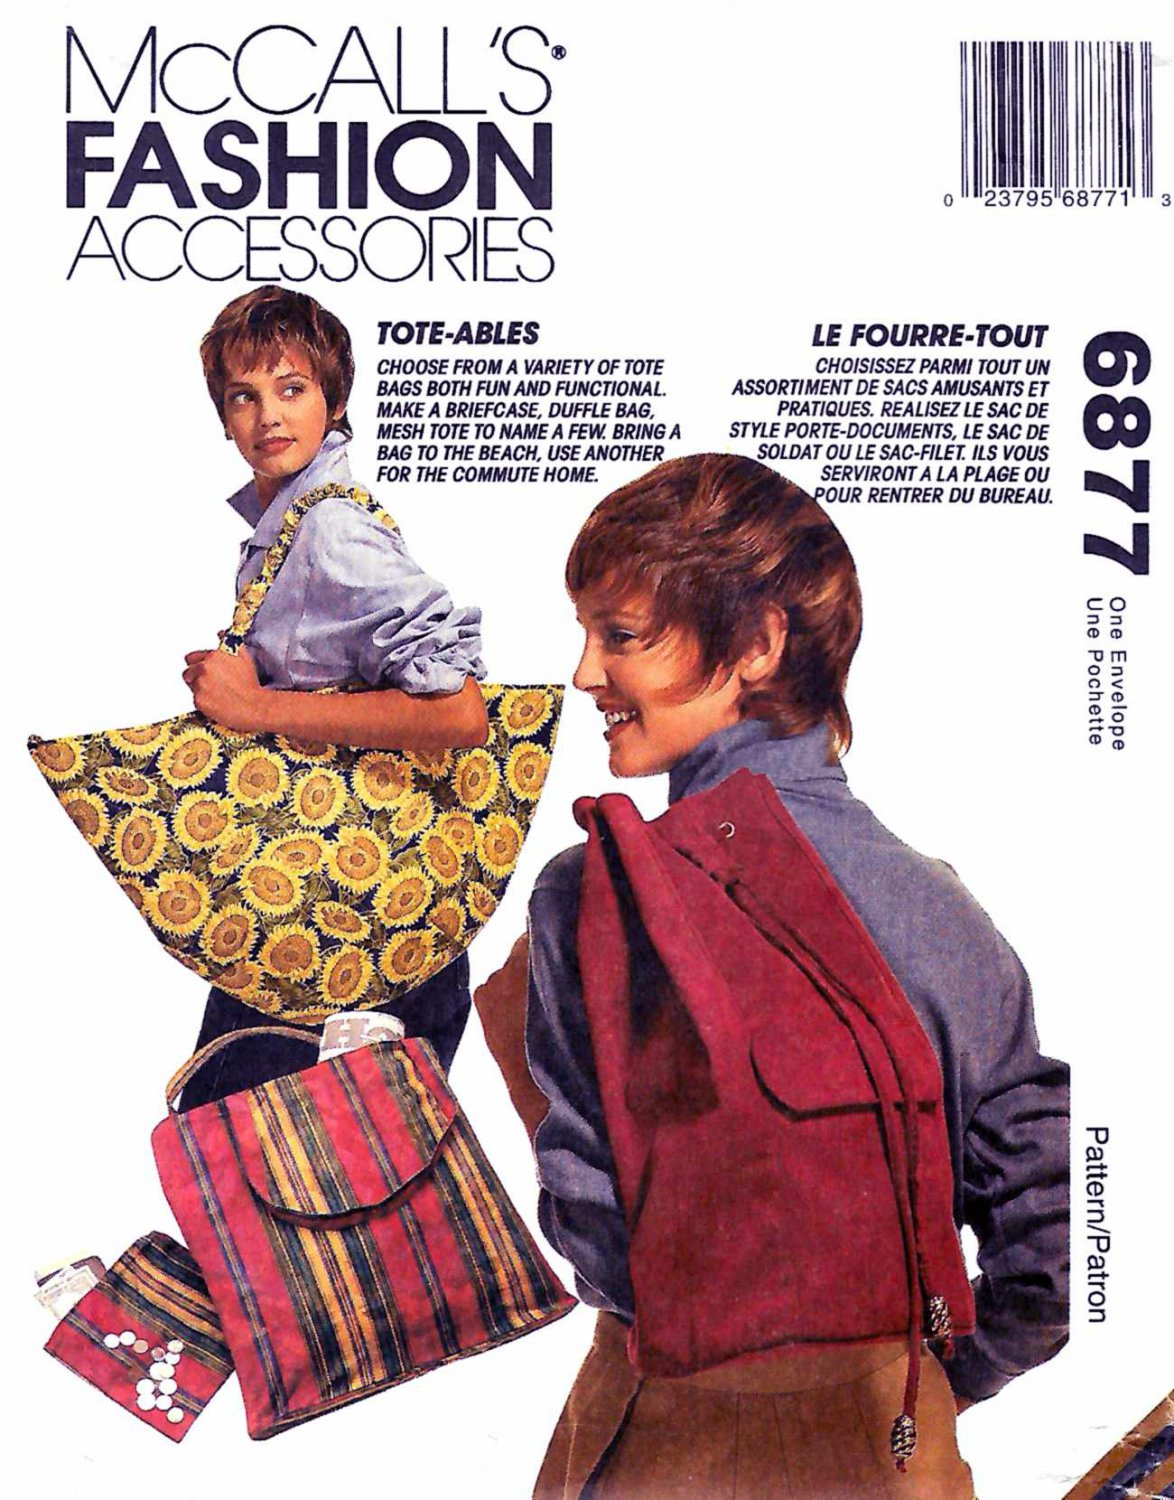 McCall's Sewing Pattern 6877 875 Fashion Accessories Totes Bags Backpack Duffle Bag